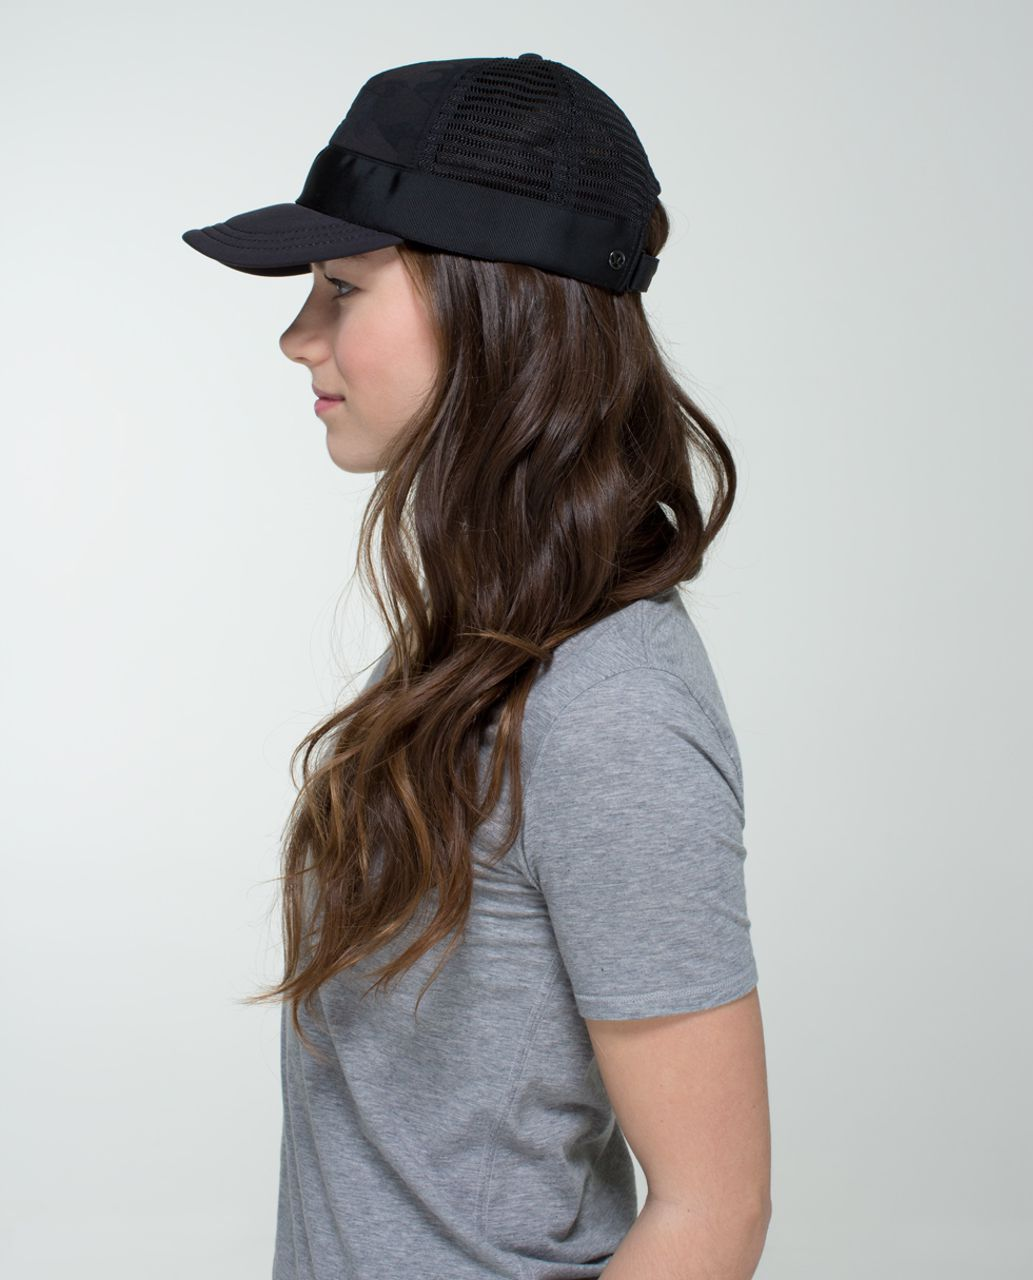 Lululemon WhatSUP Hat - Savasana Camo 20cm New Black / Black